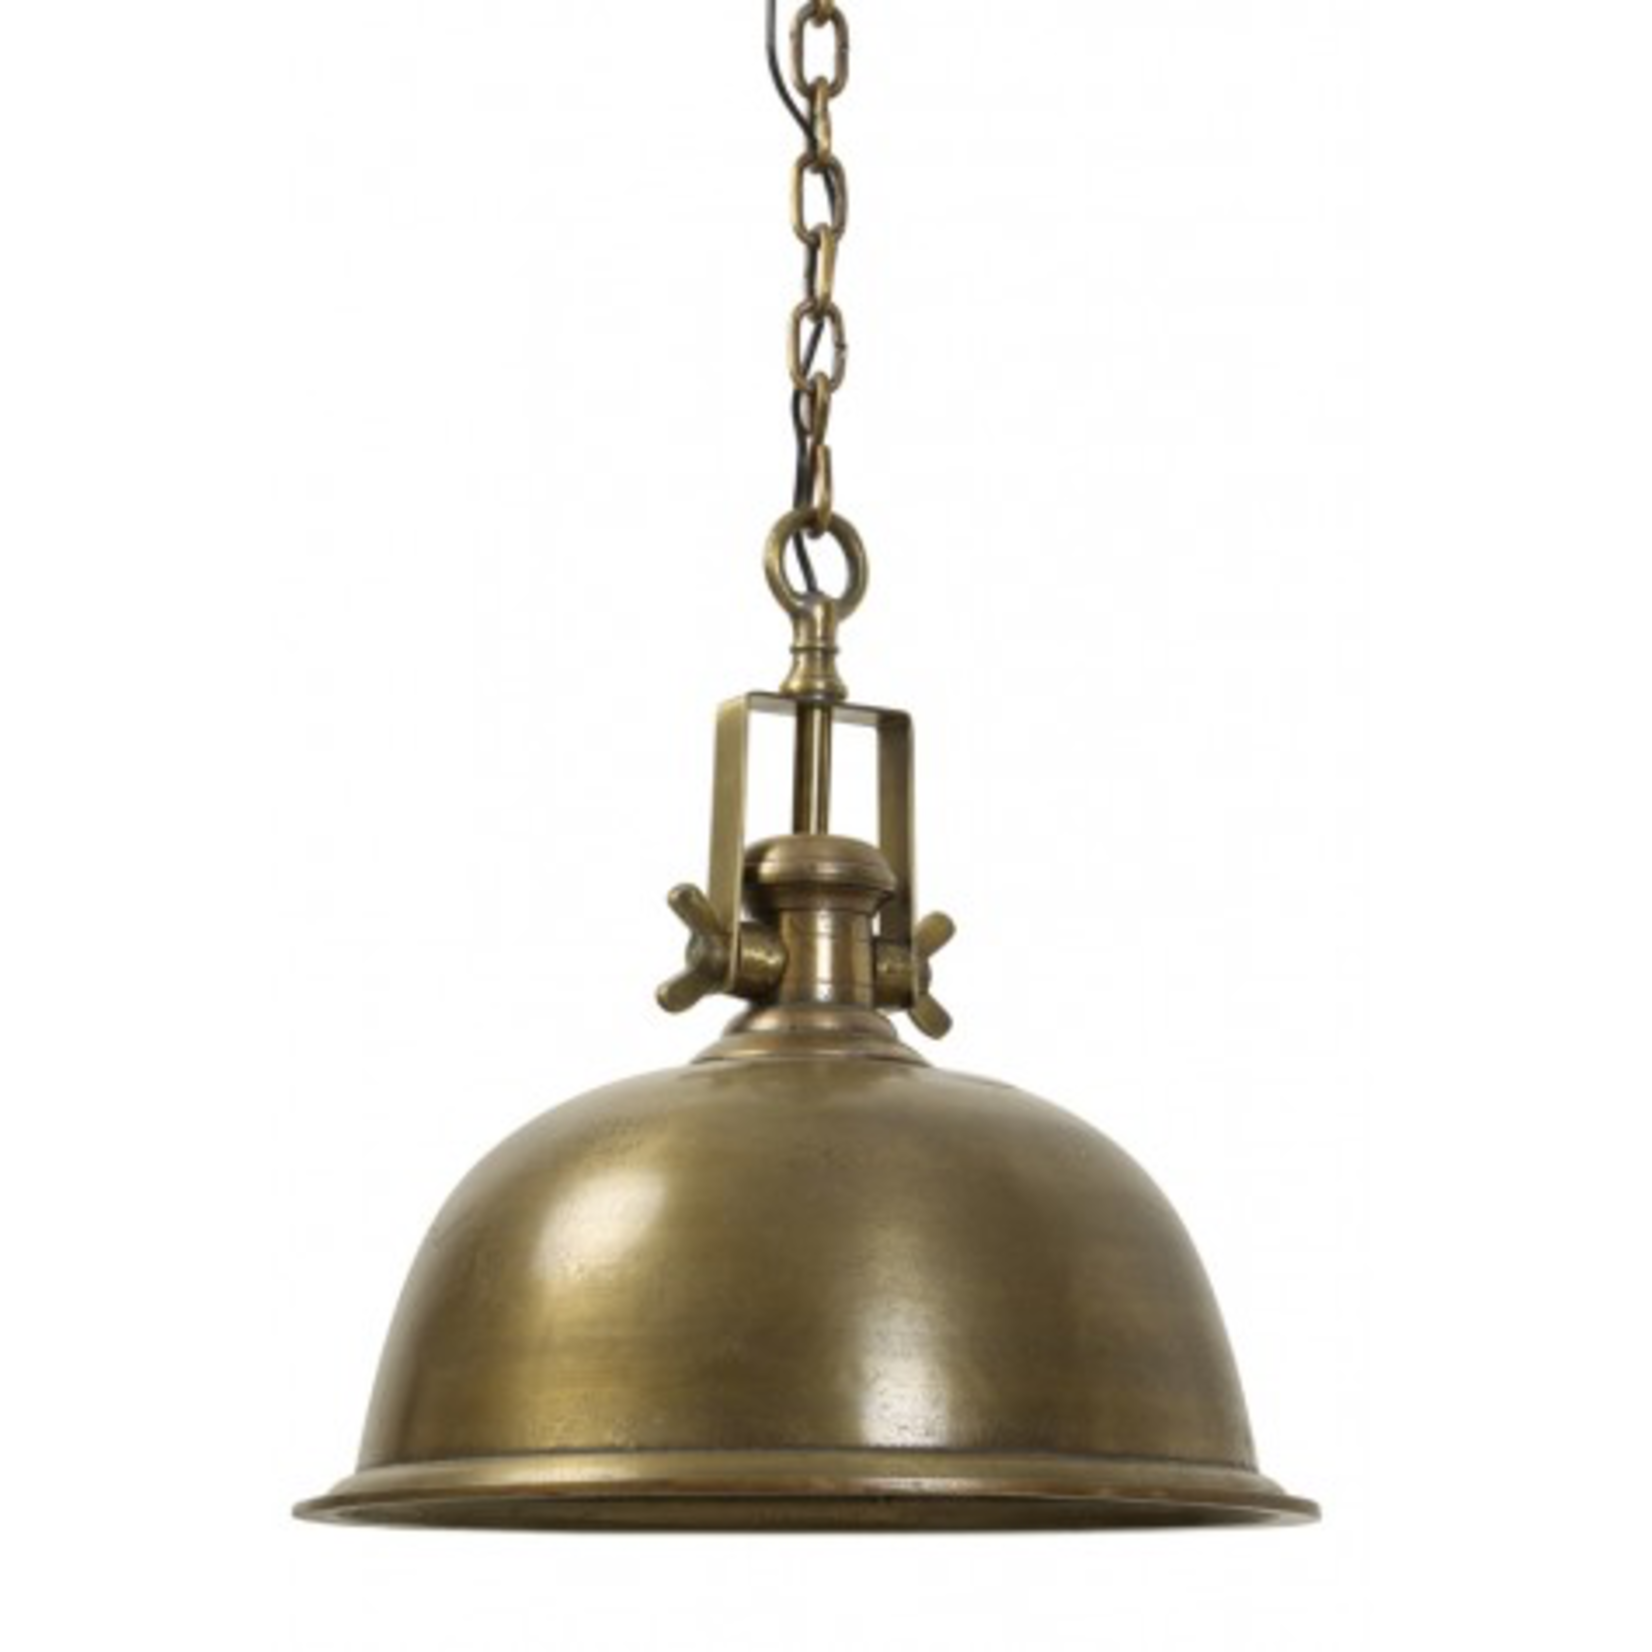 Light & Living Hanging lamp 50 cm KENNEDY large raw antique brass finish